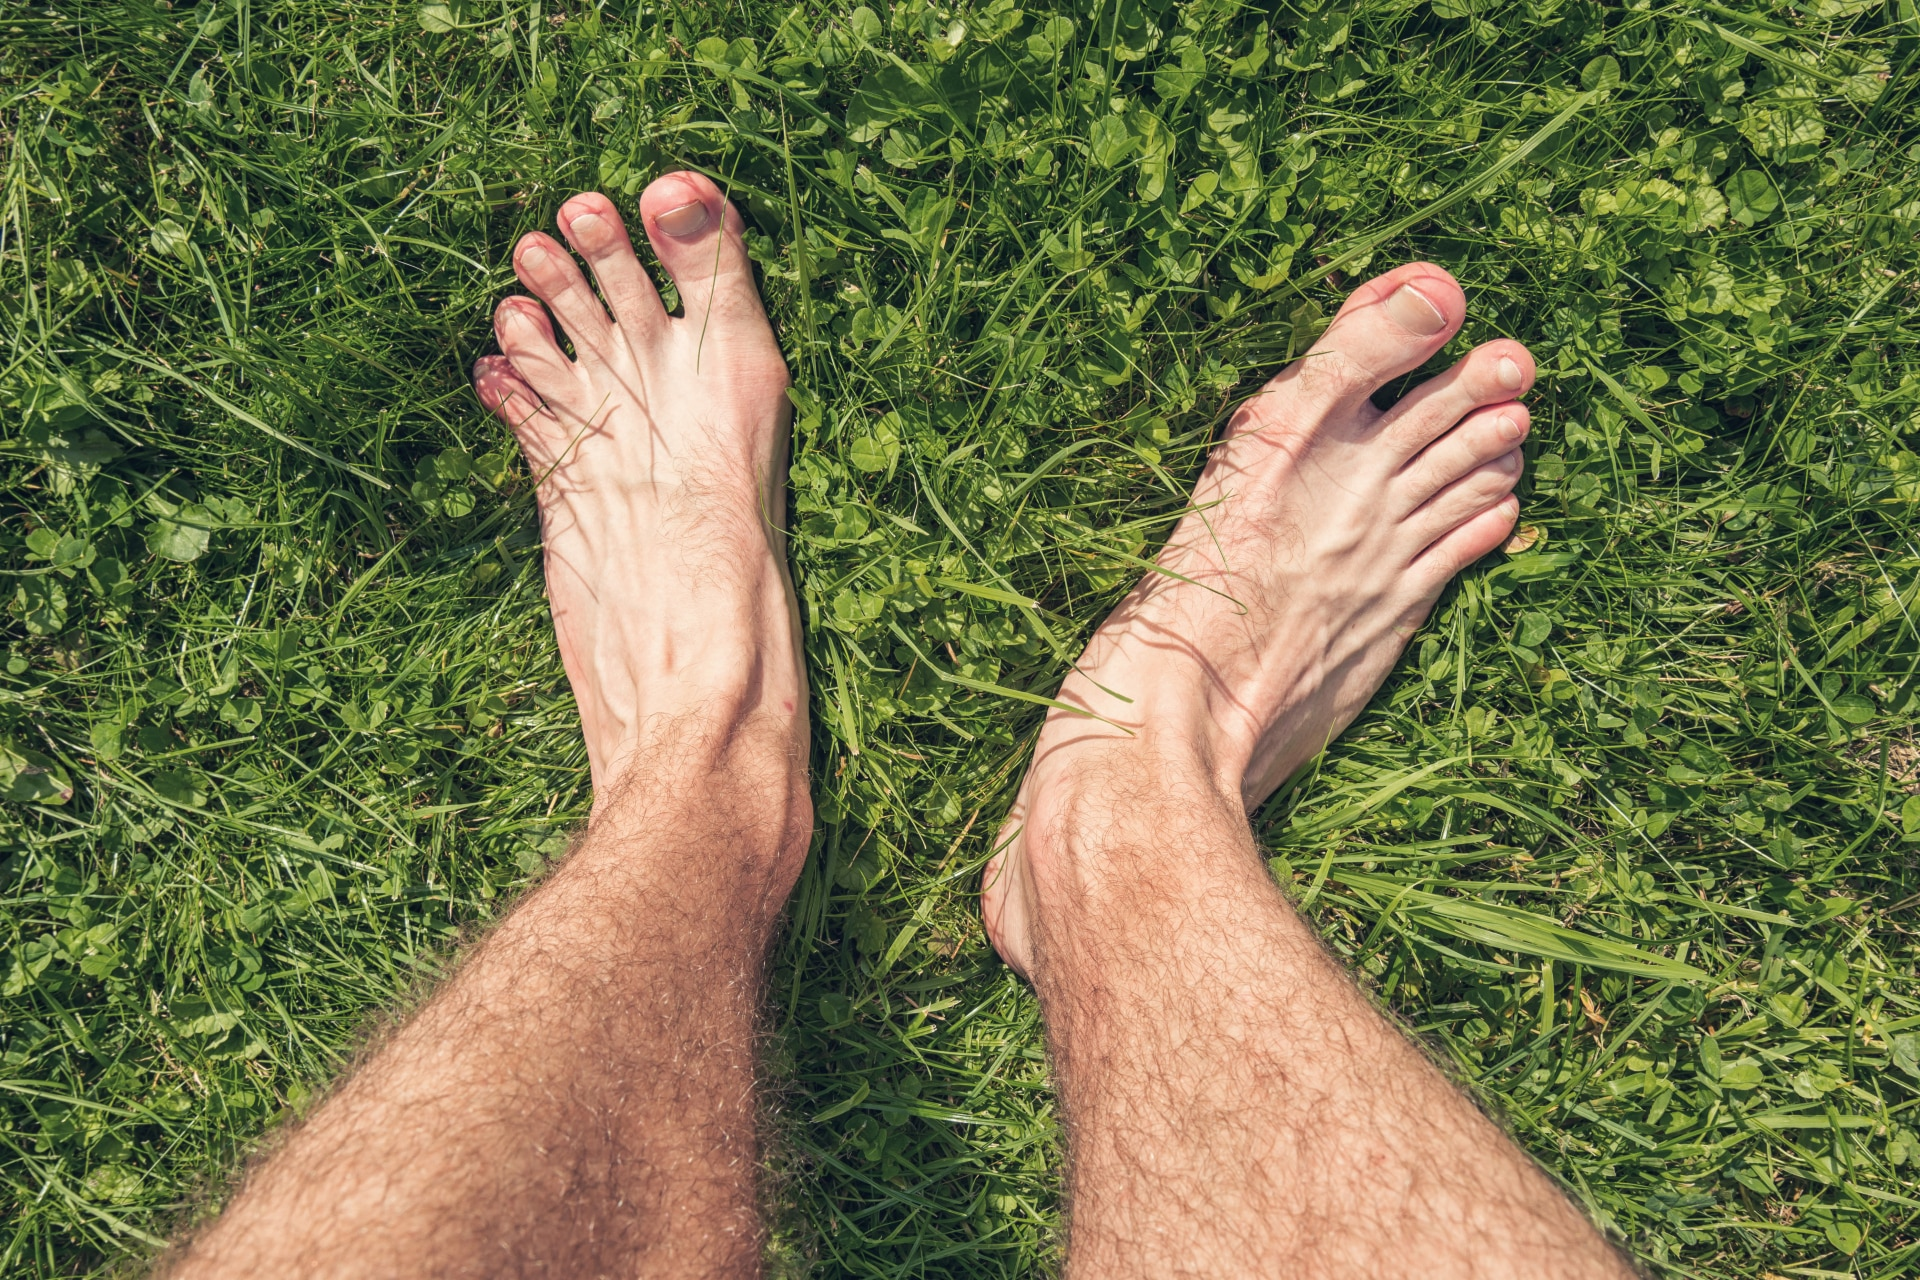 Feet have why ugly guys do Famous Women